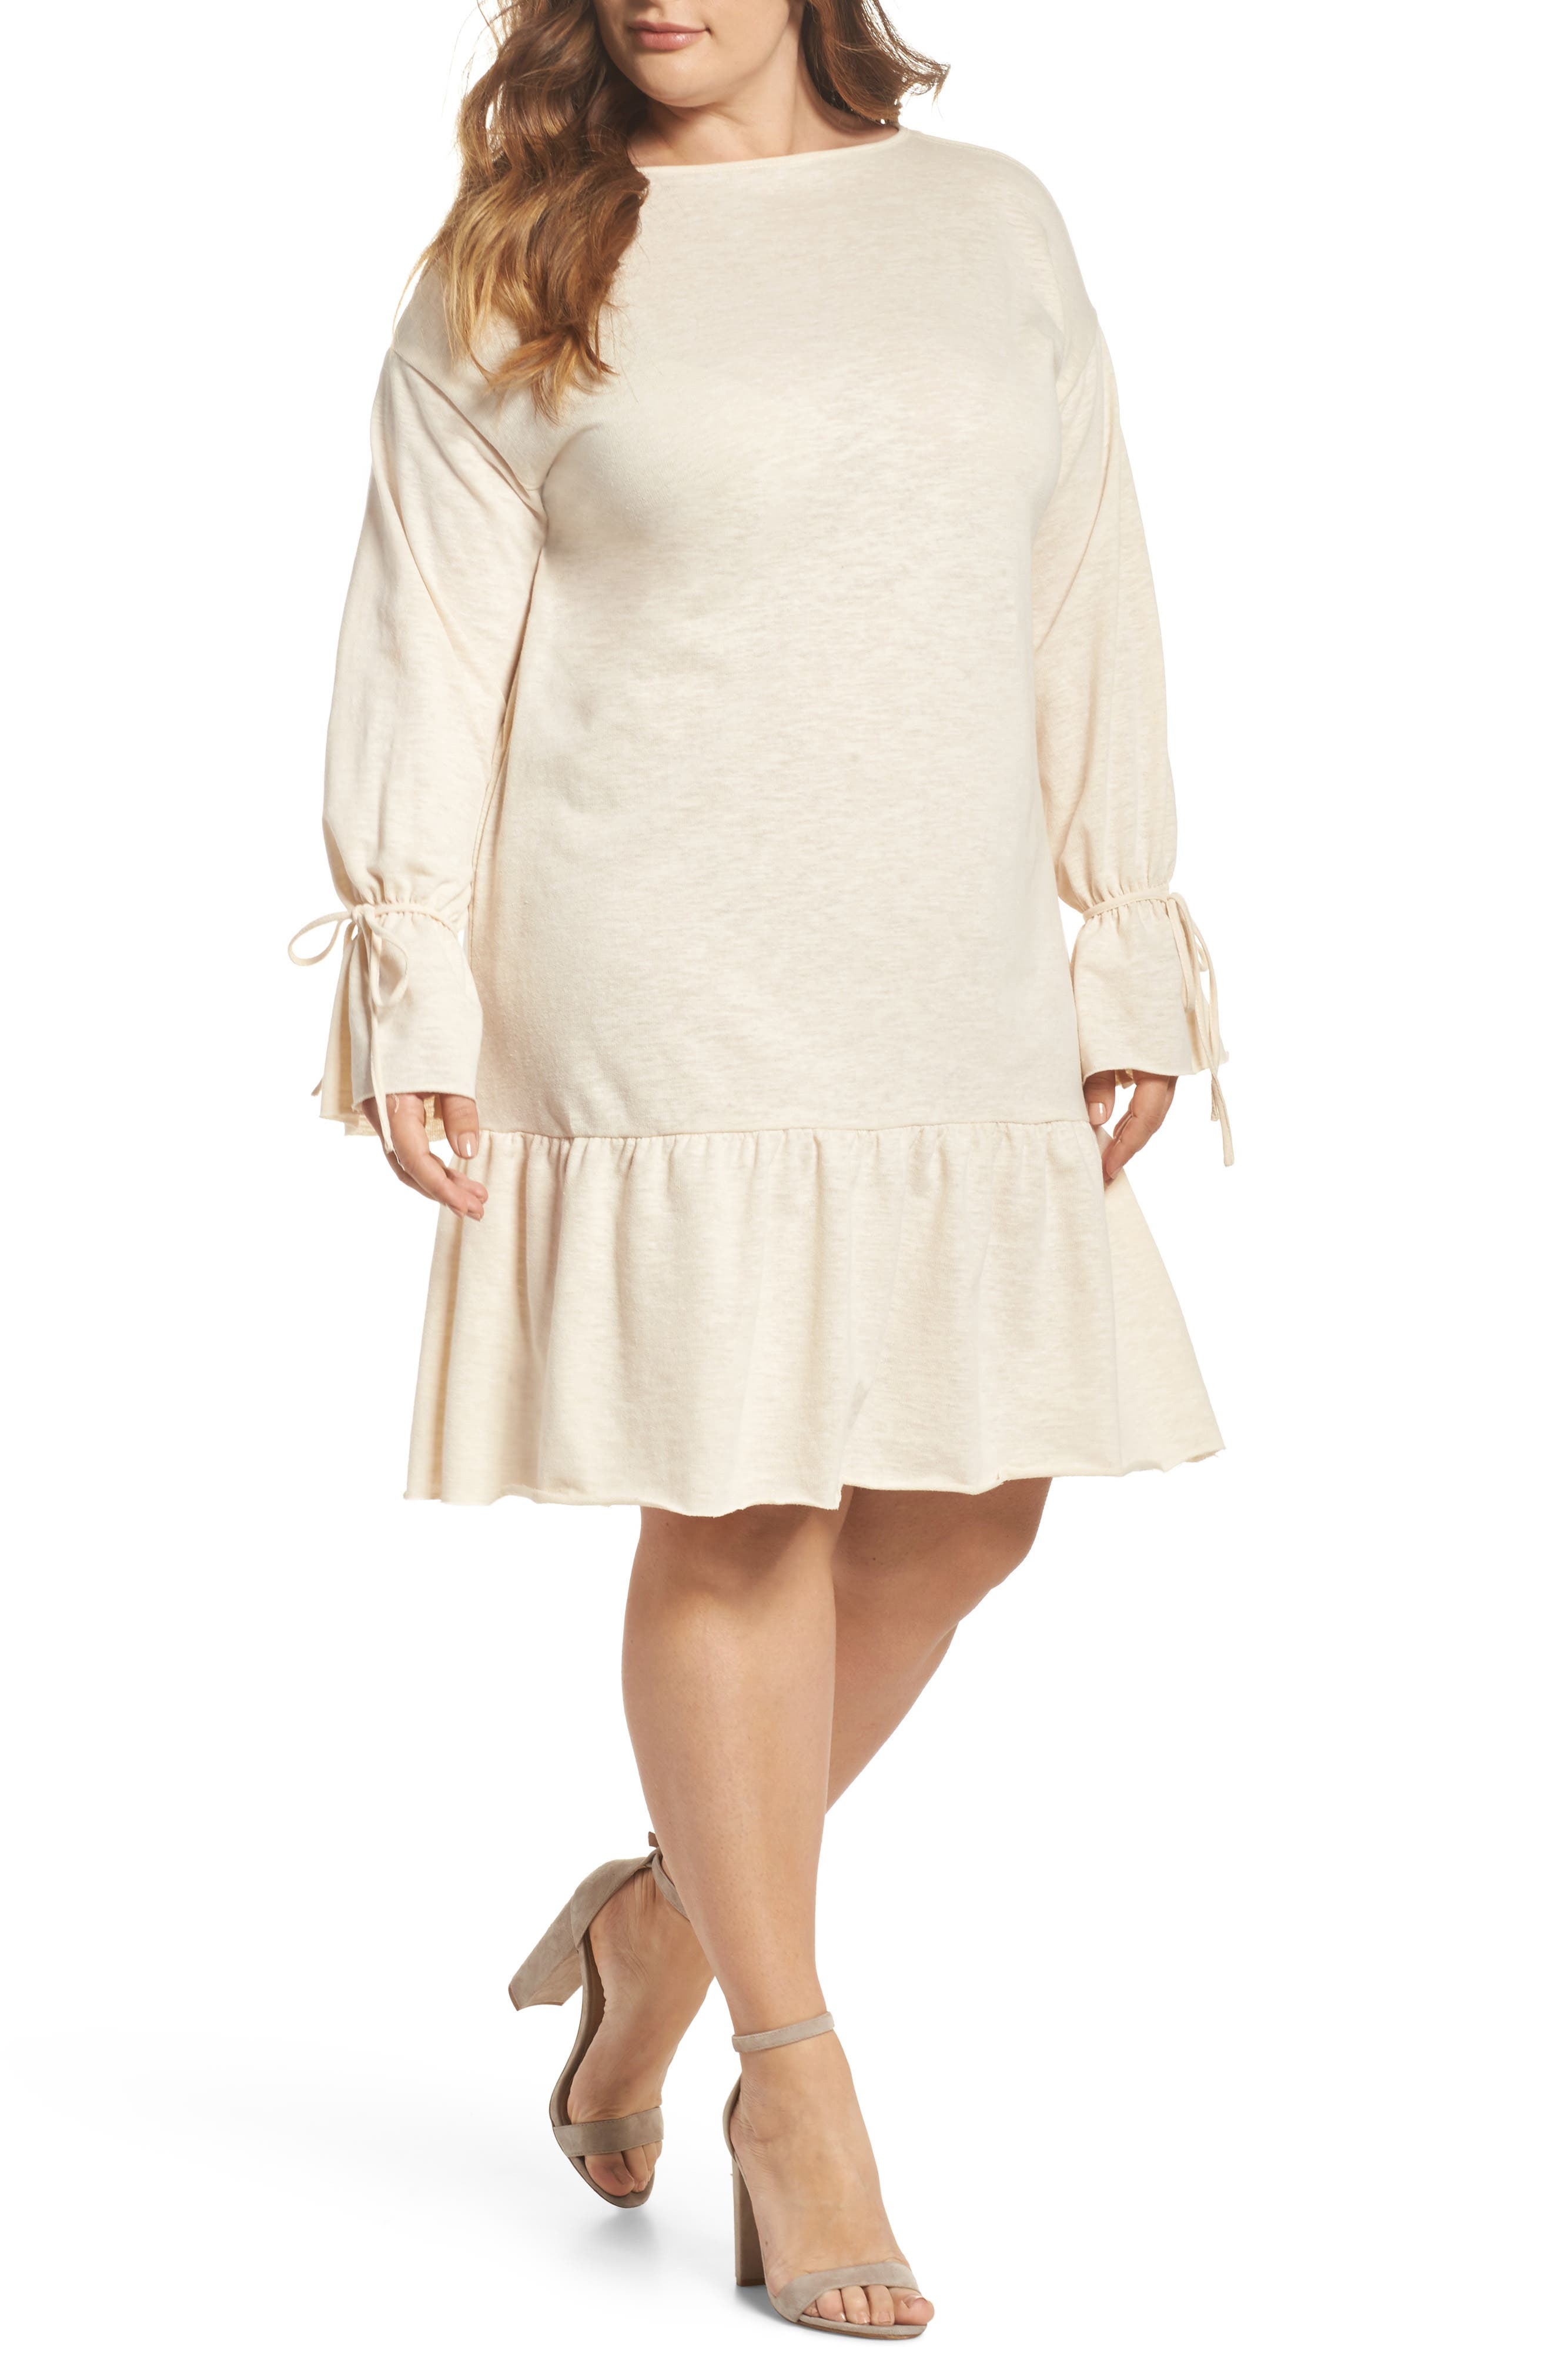 Alternate Image 1 Selected - Glamorous Flounce Hem Shift Dress (Plus Size)